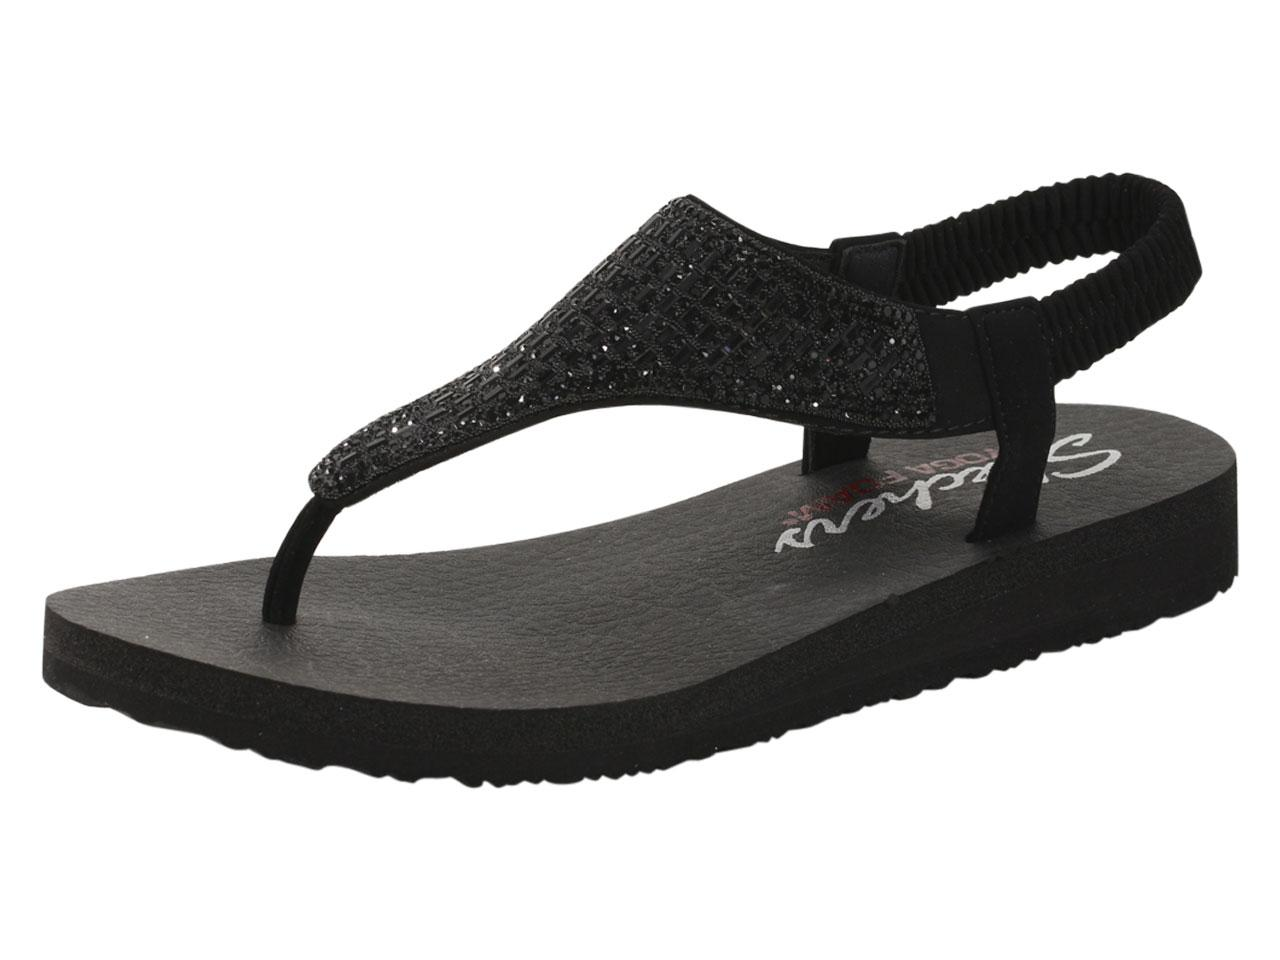 cb509ac602deb Skechers Women s Meditation Rock Crown Yoga Foam Sandals Shoes